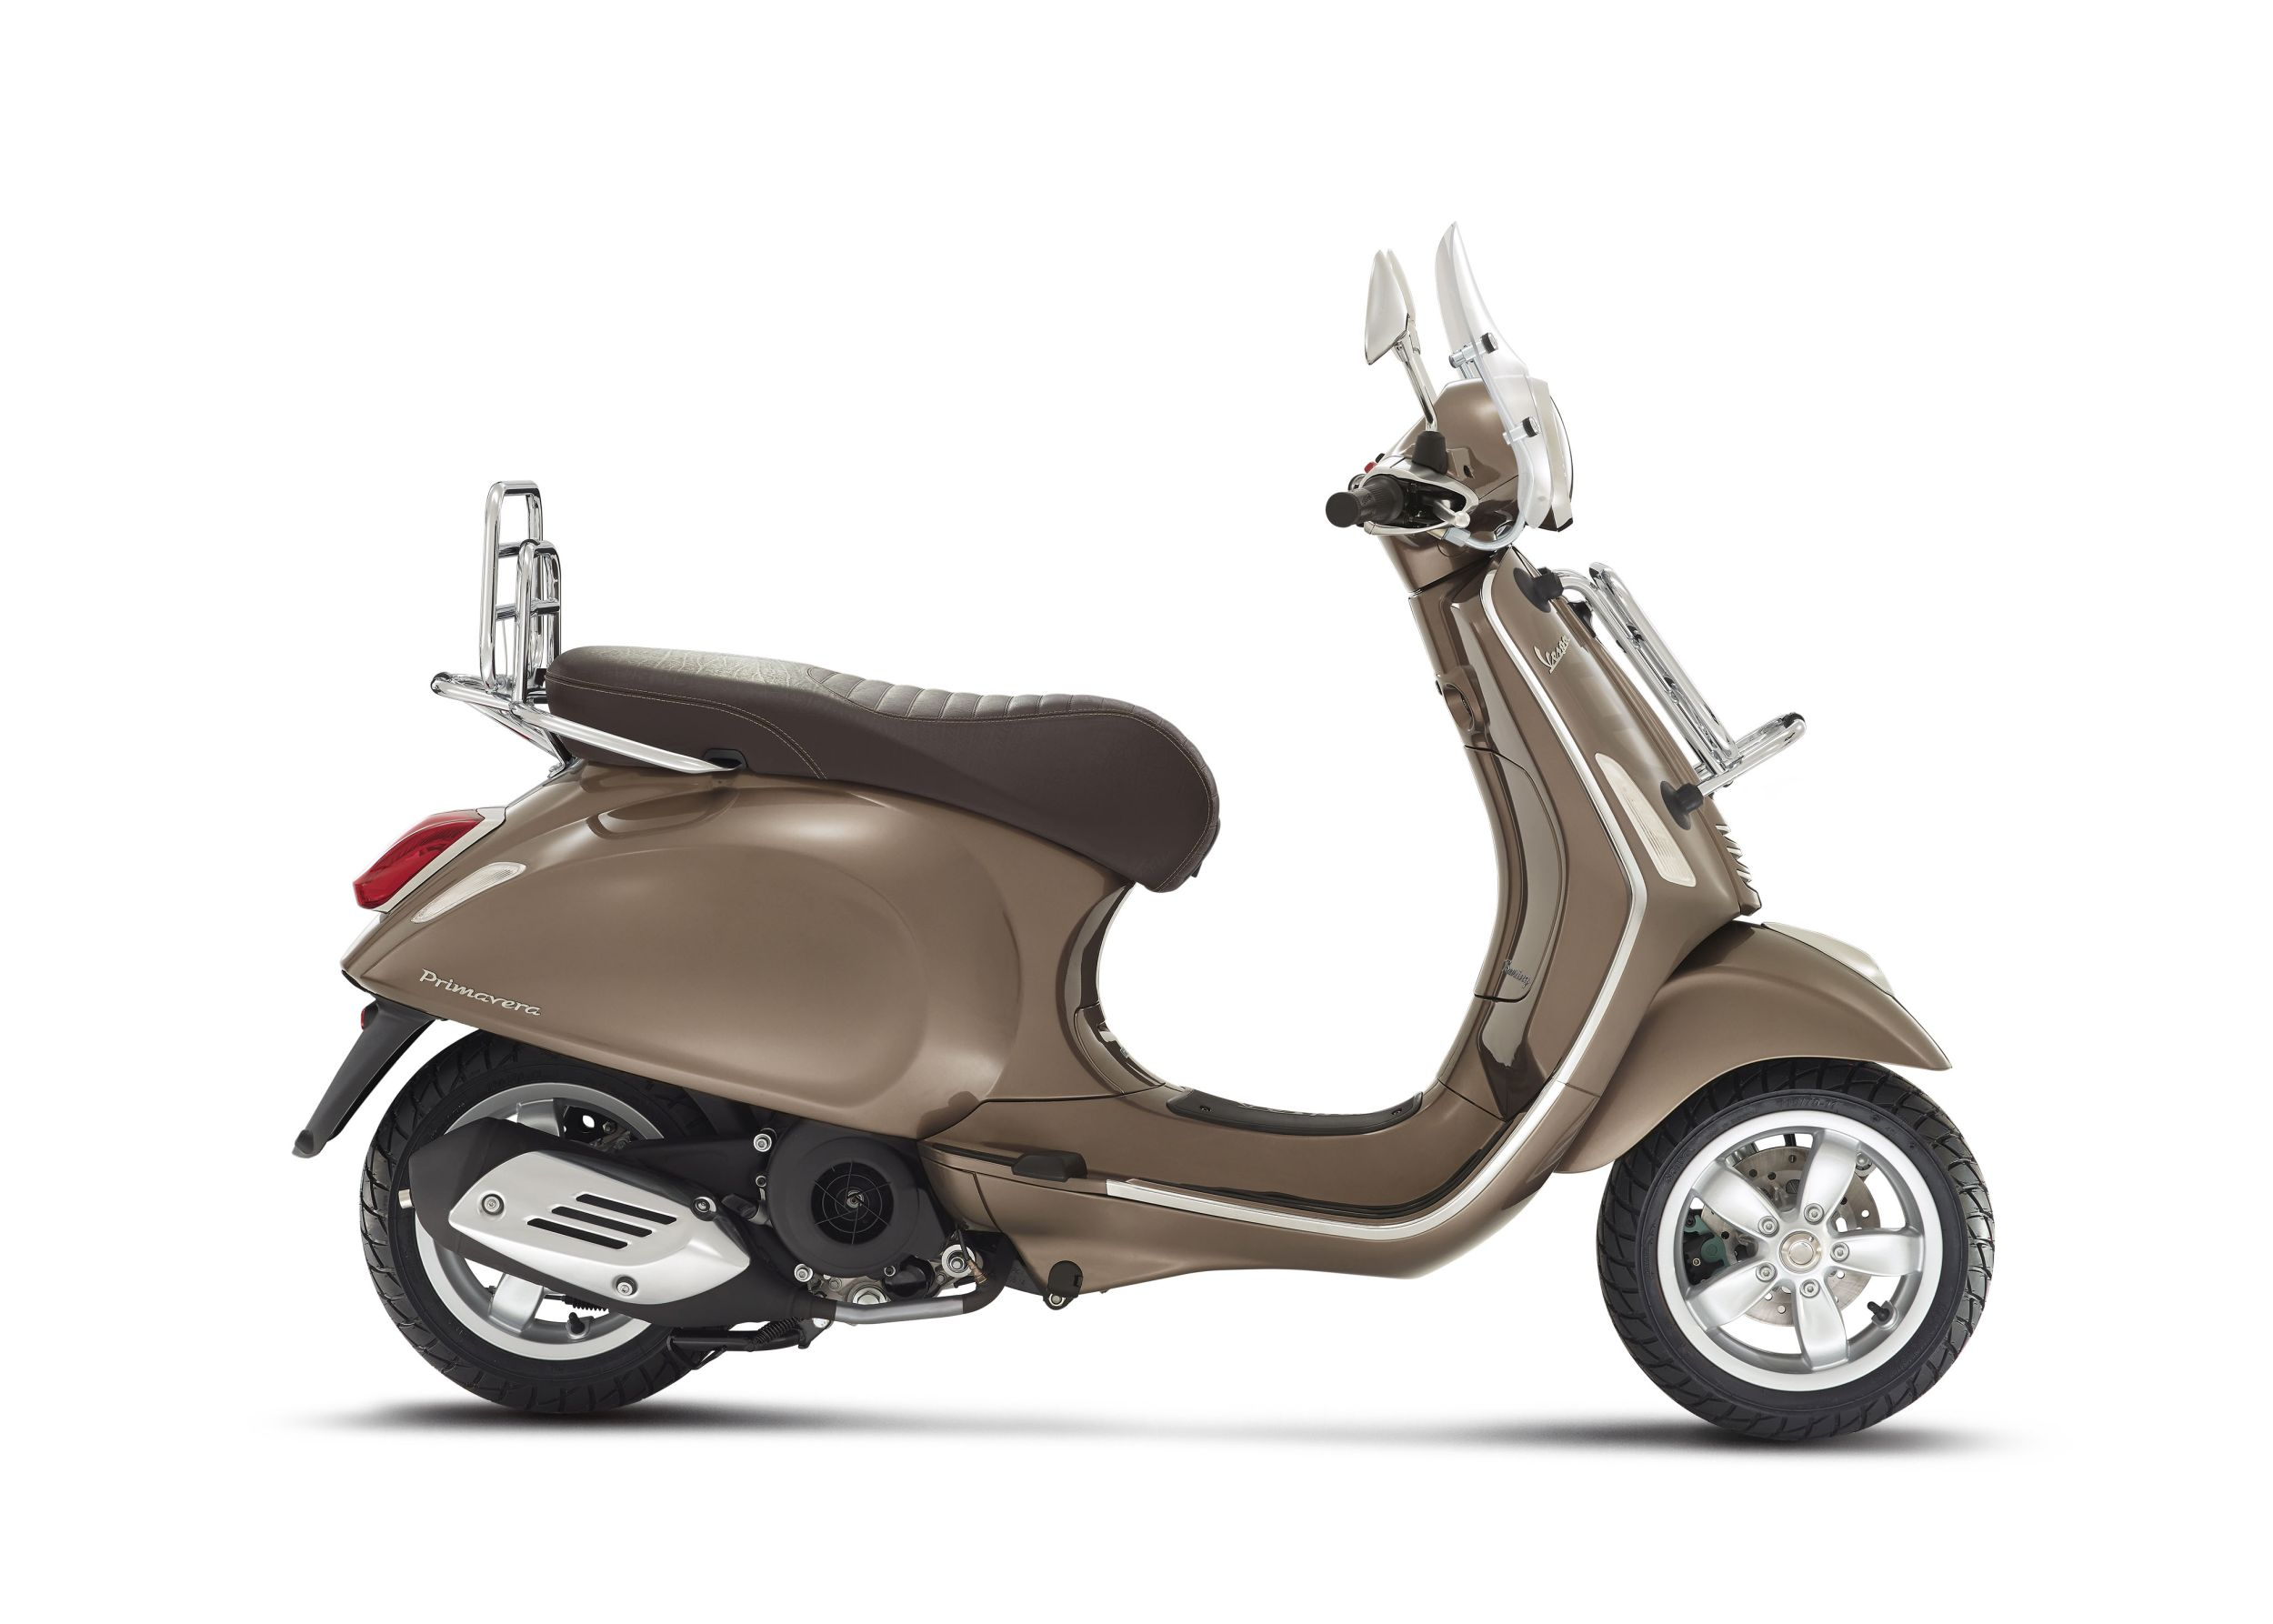 vespa primavera 50 2t touring all technical data of the model primavera 50 2t touring from vespa. Black Bedroom Furniture Sets. Home Design Ideas